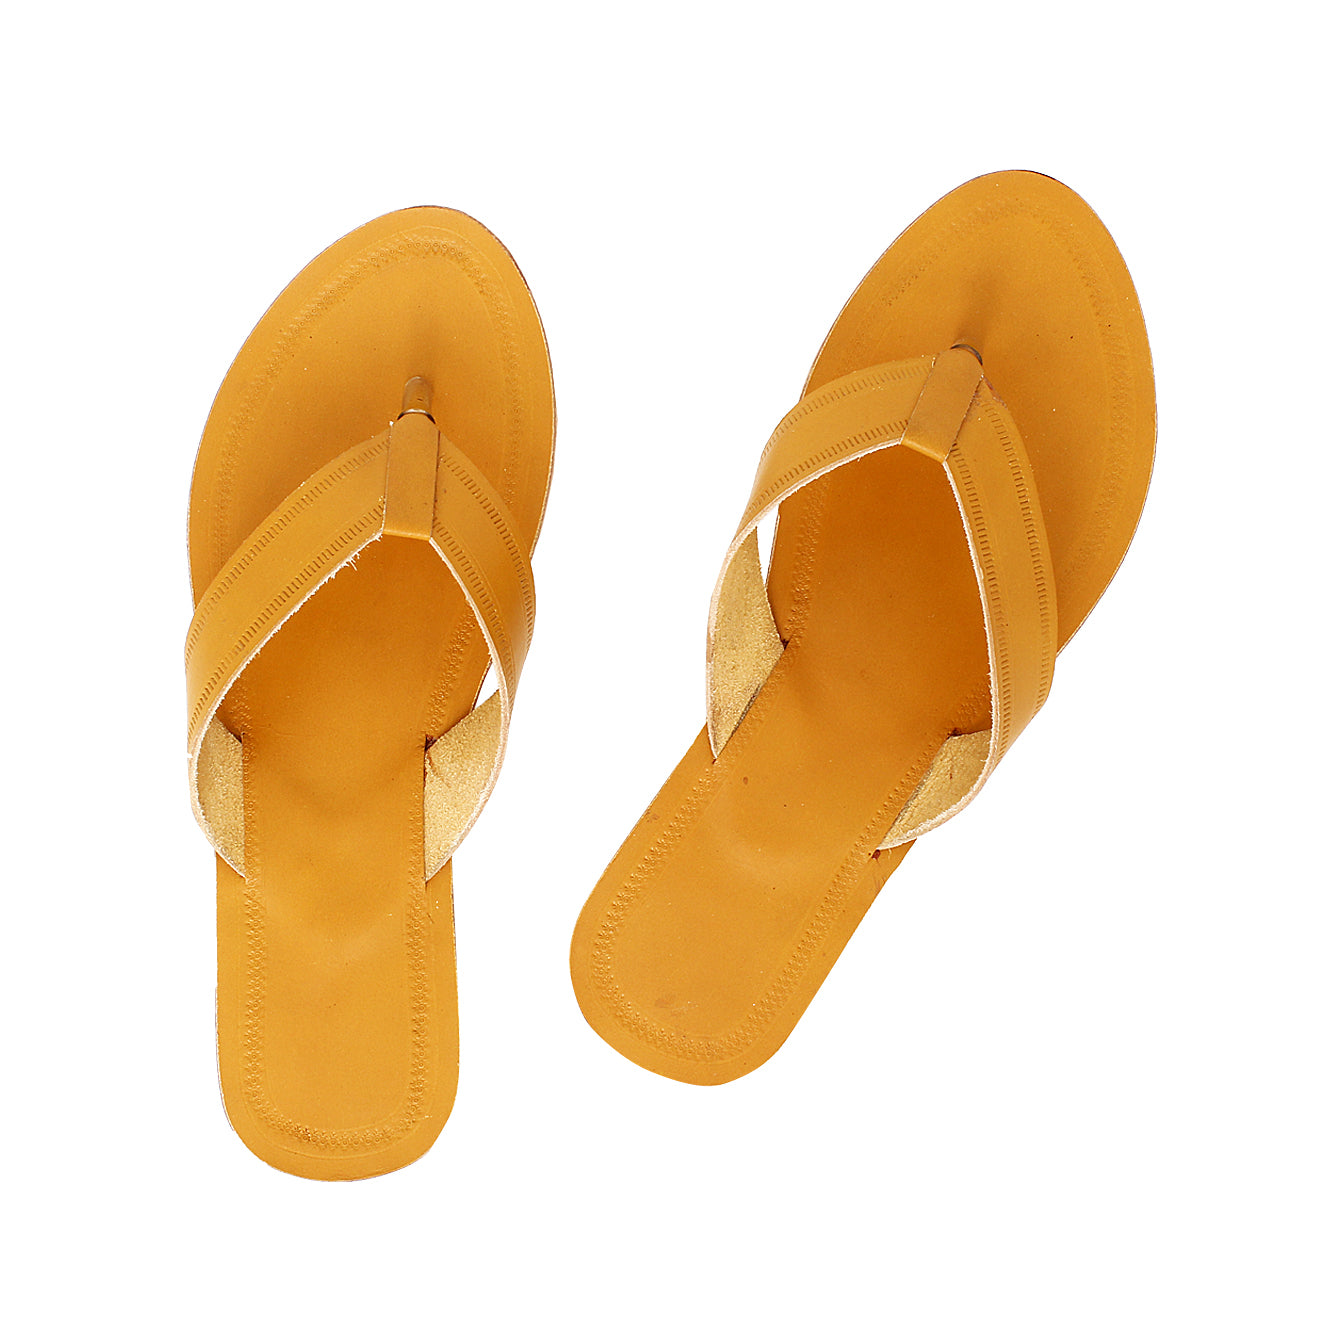 Sweet Dark Yellow Kolhapuri Flat Heel Slipper for Women KRKA-P-W-247